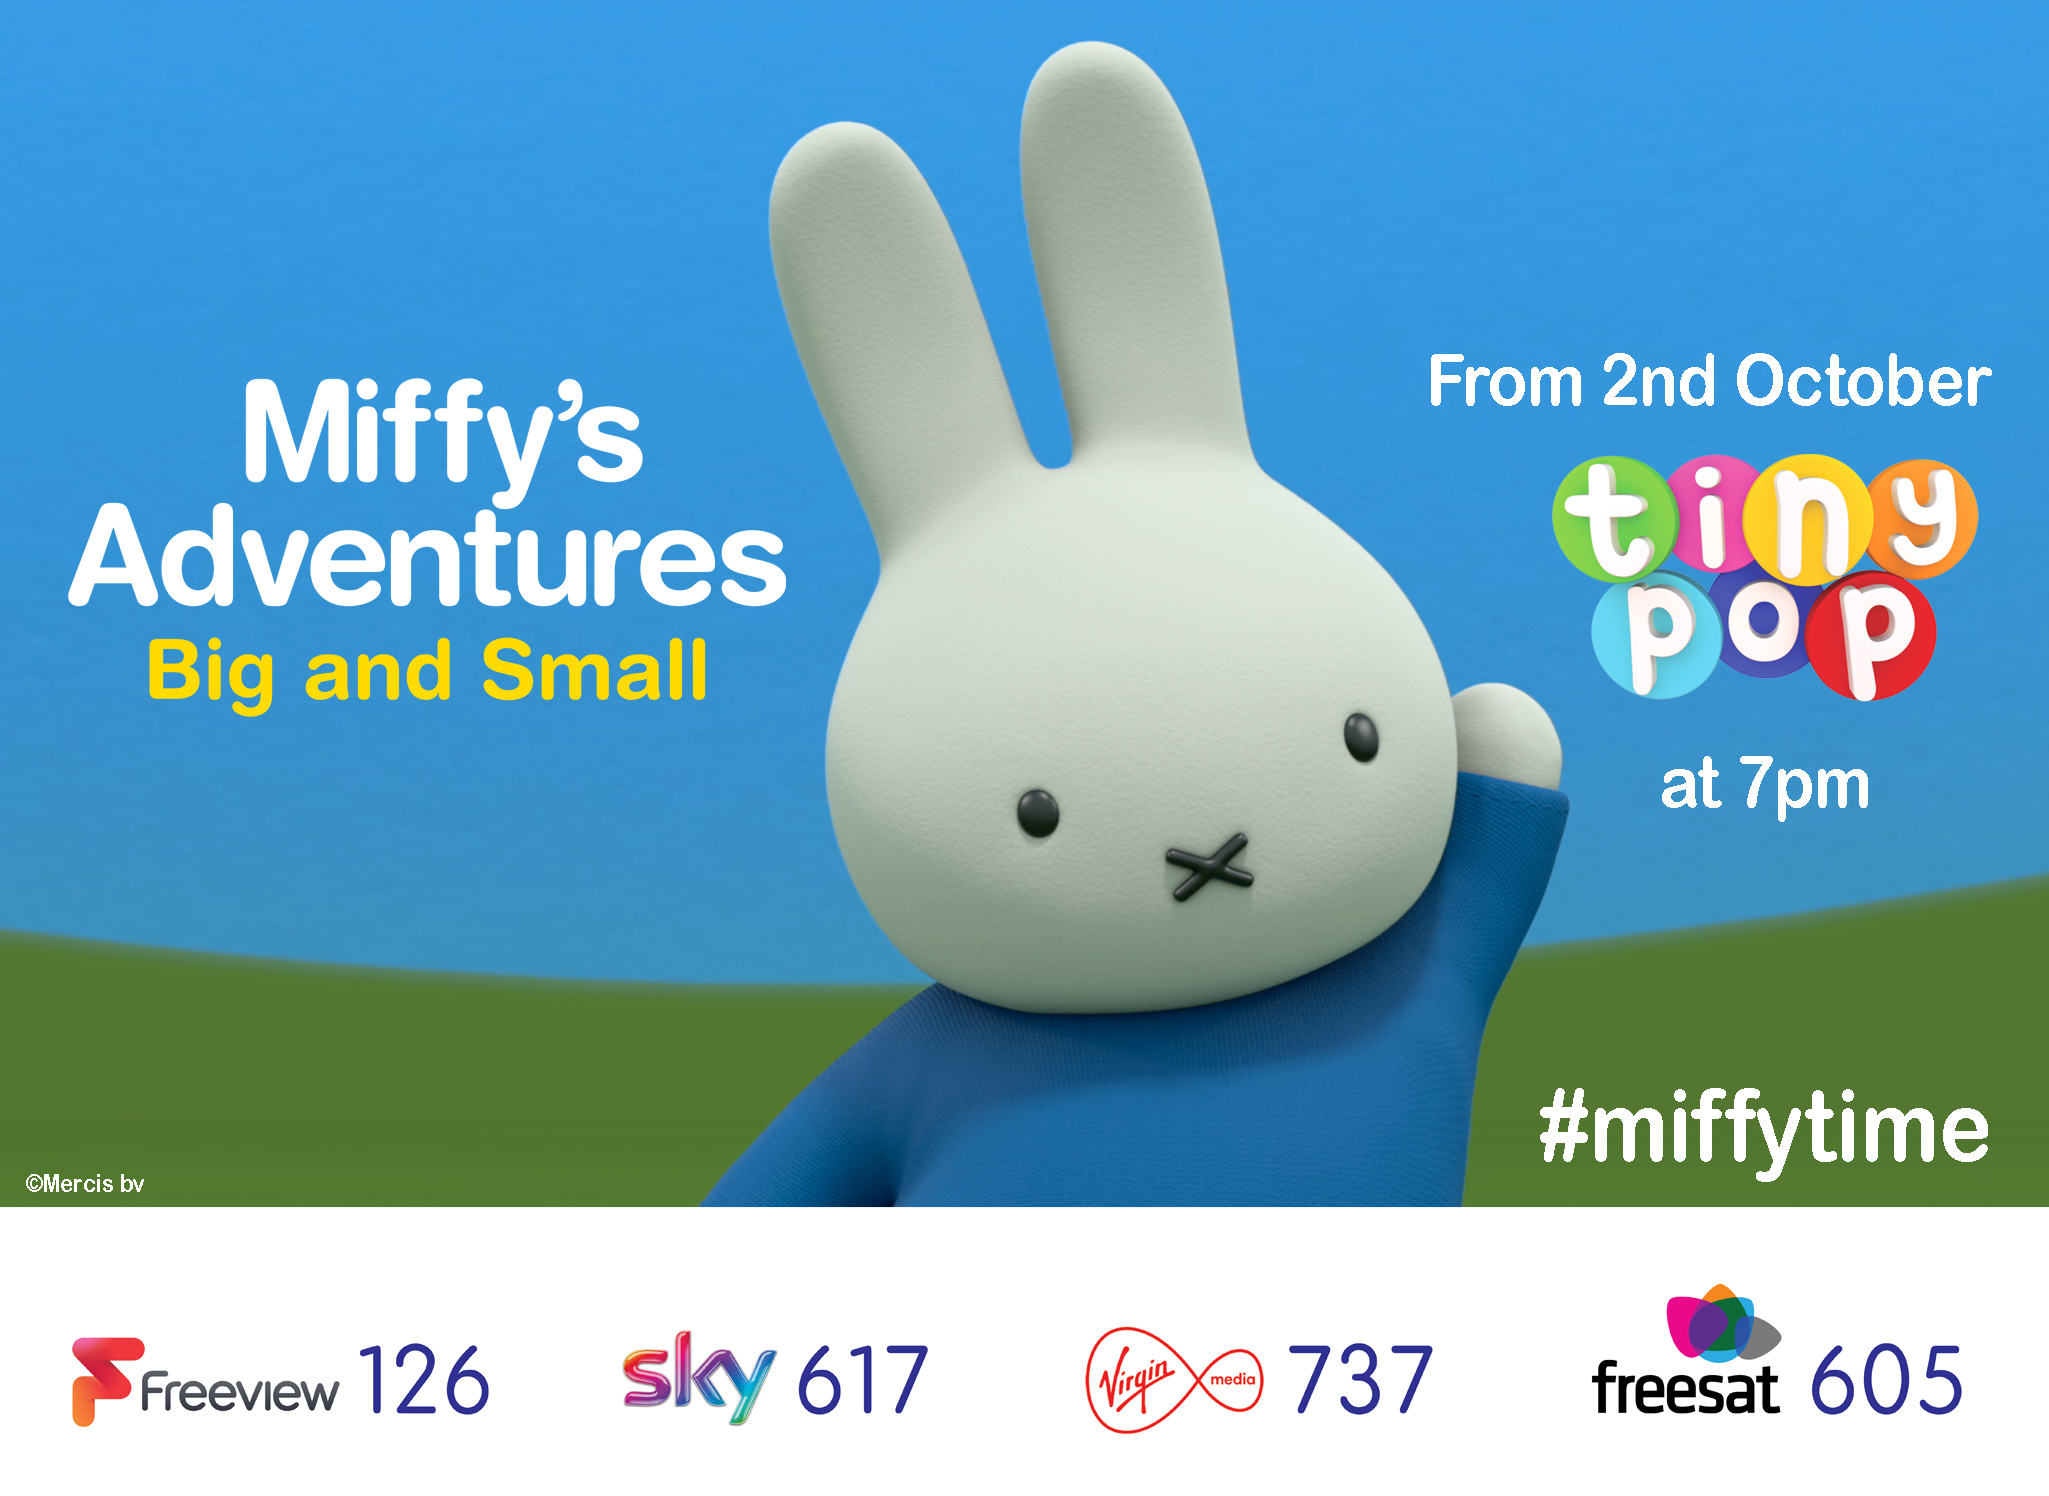 2nd October, Miffy fans can watch Miffy ...